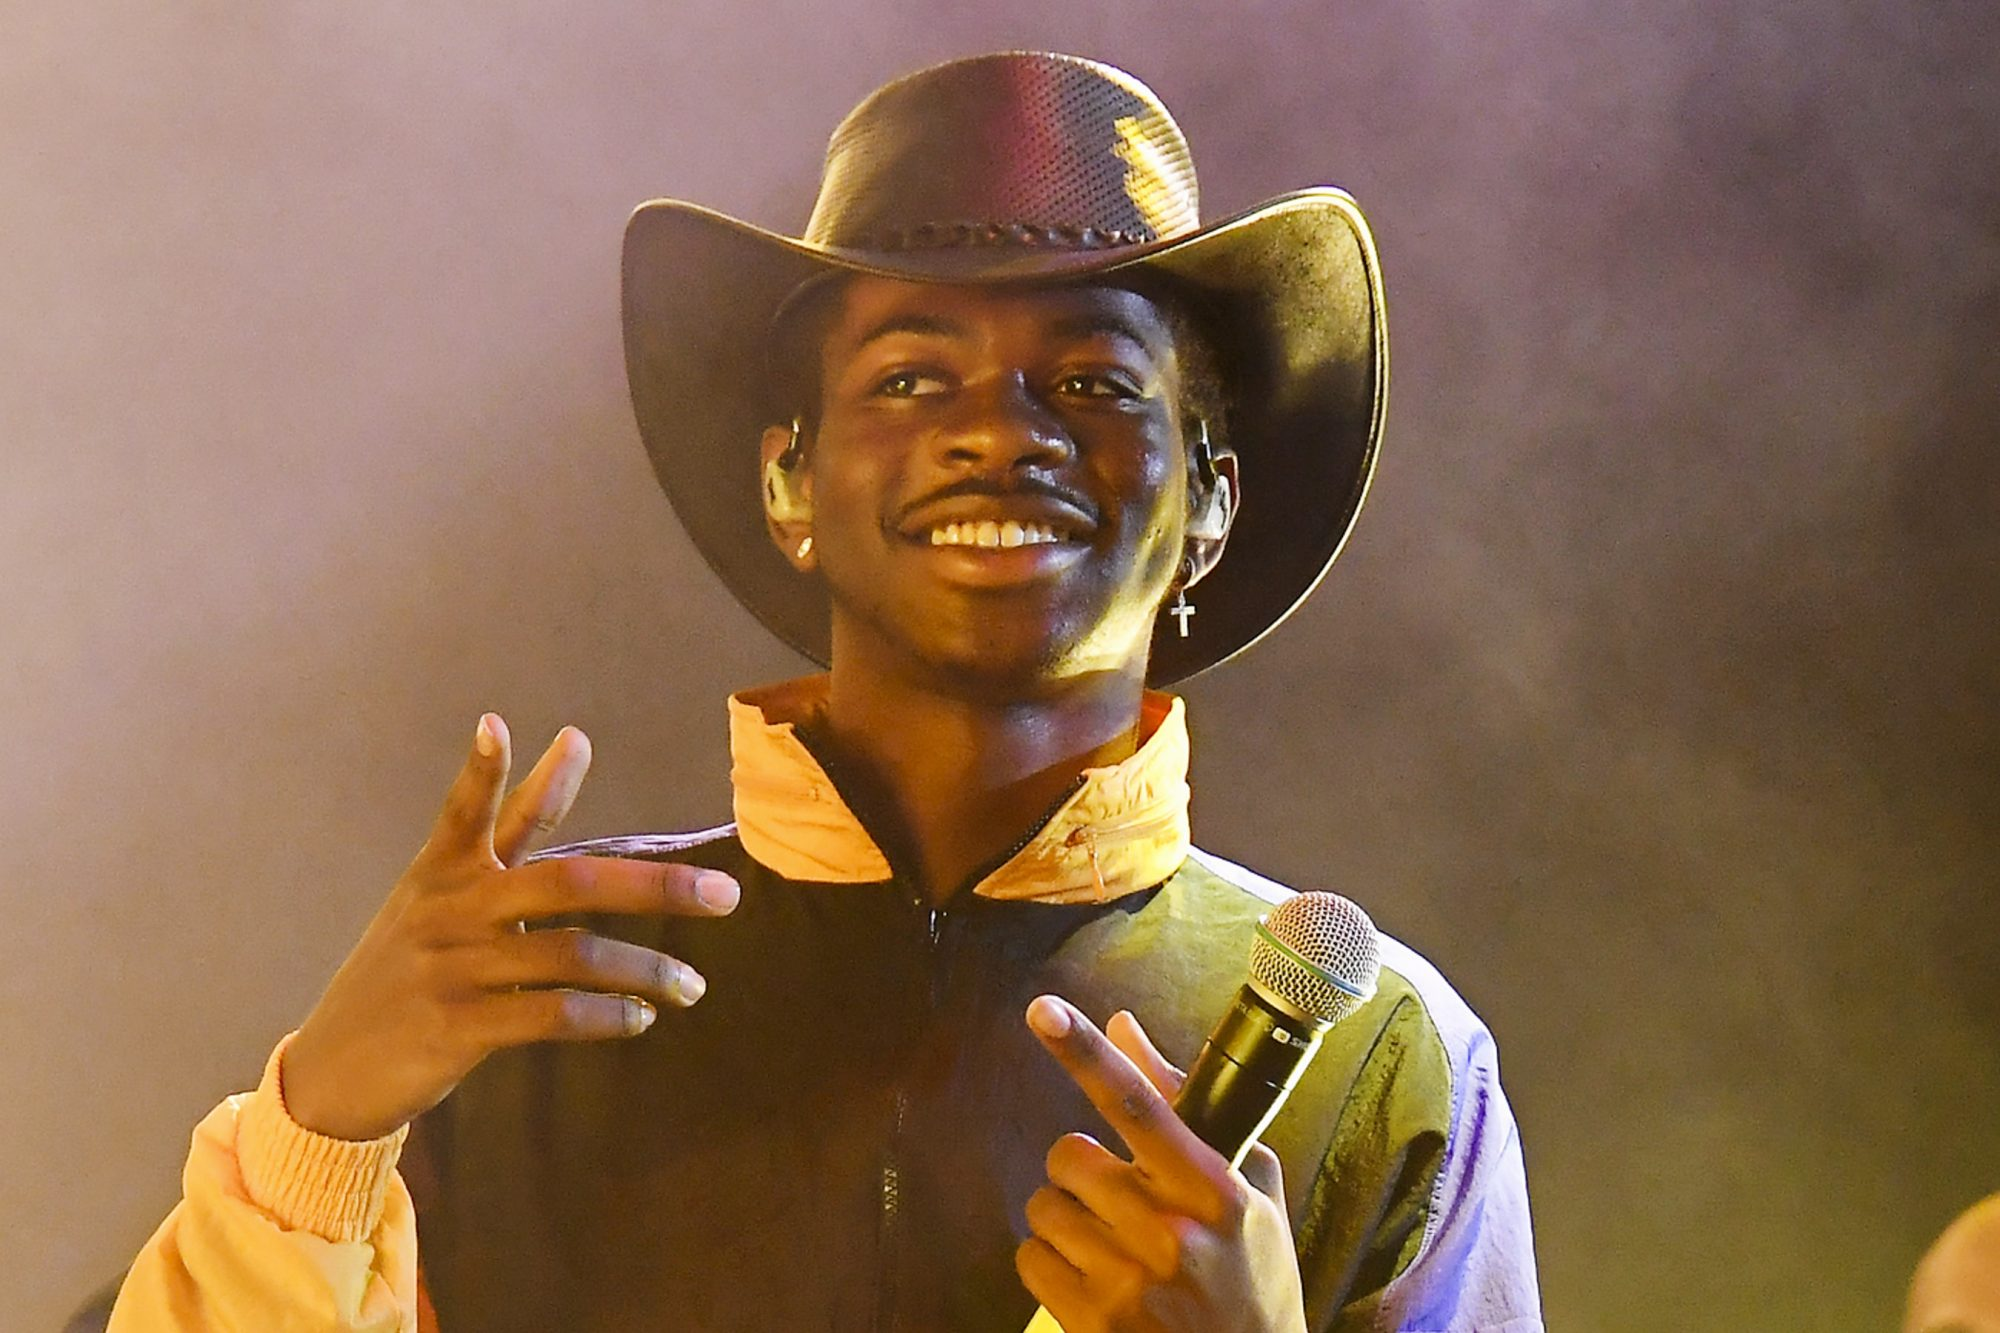 EAST RUTHERFORD, NEW JERSEY - JUNE 02: Lil Nas X performs at Summer Jam 2019 at MetLife Stadium on June 02, 2019 in East Rutherford, New Jersey. (Photo by Nicholas Hunt/Getty Images)